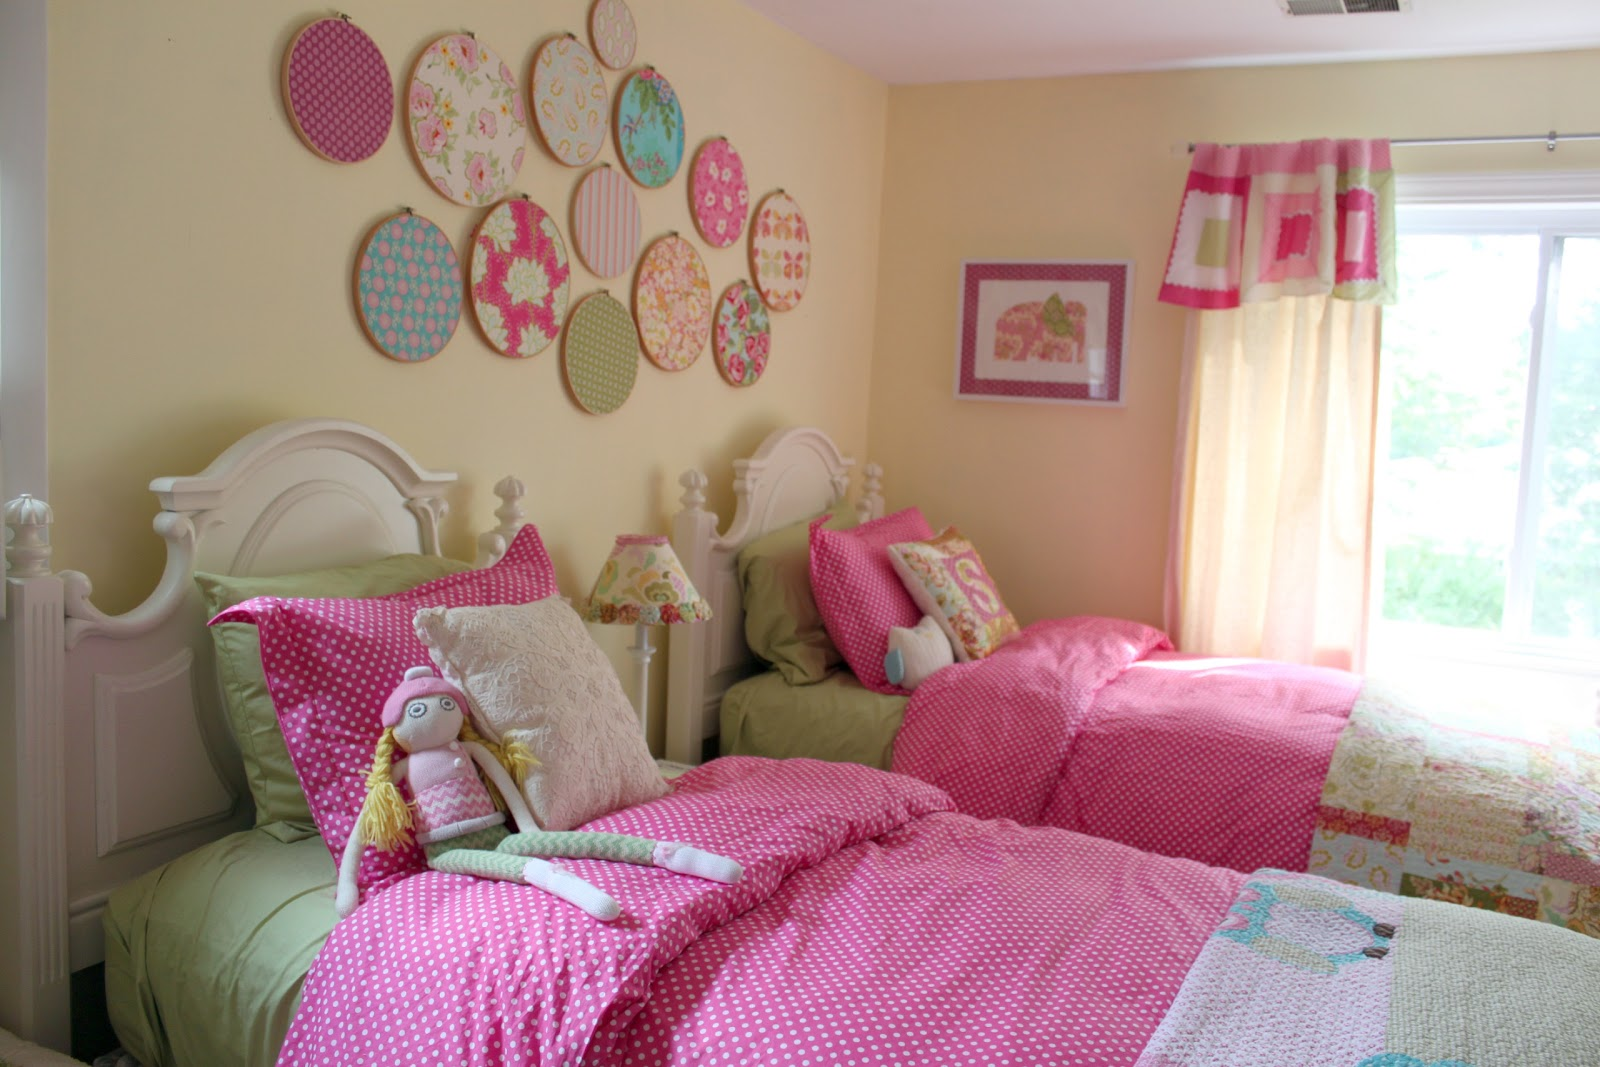 Decorating girls shared toddler bedroom the cottage mama - Bed for girls room ...